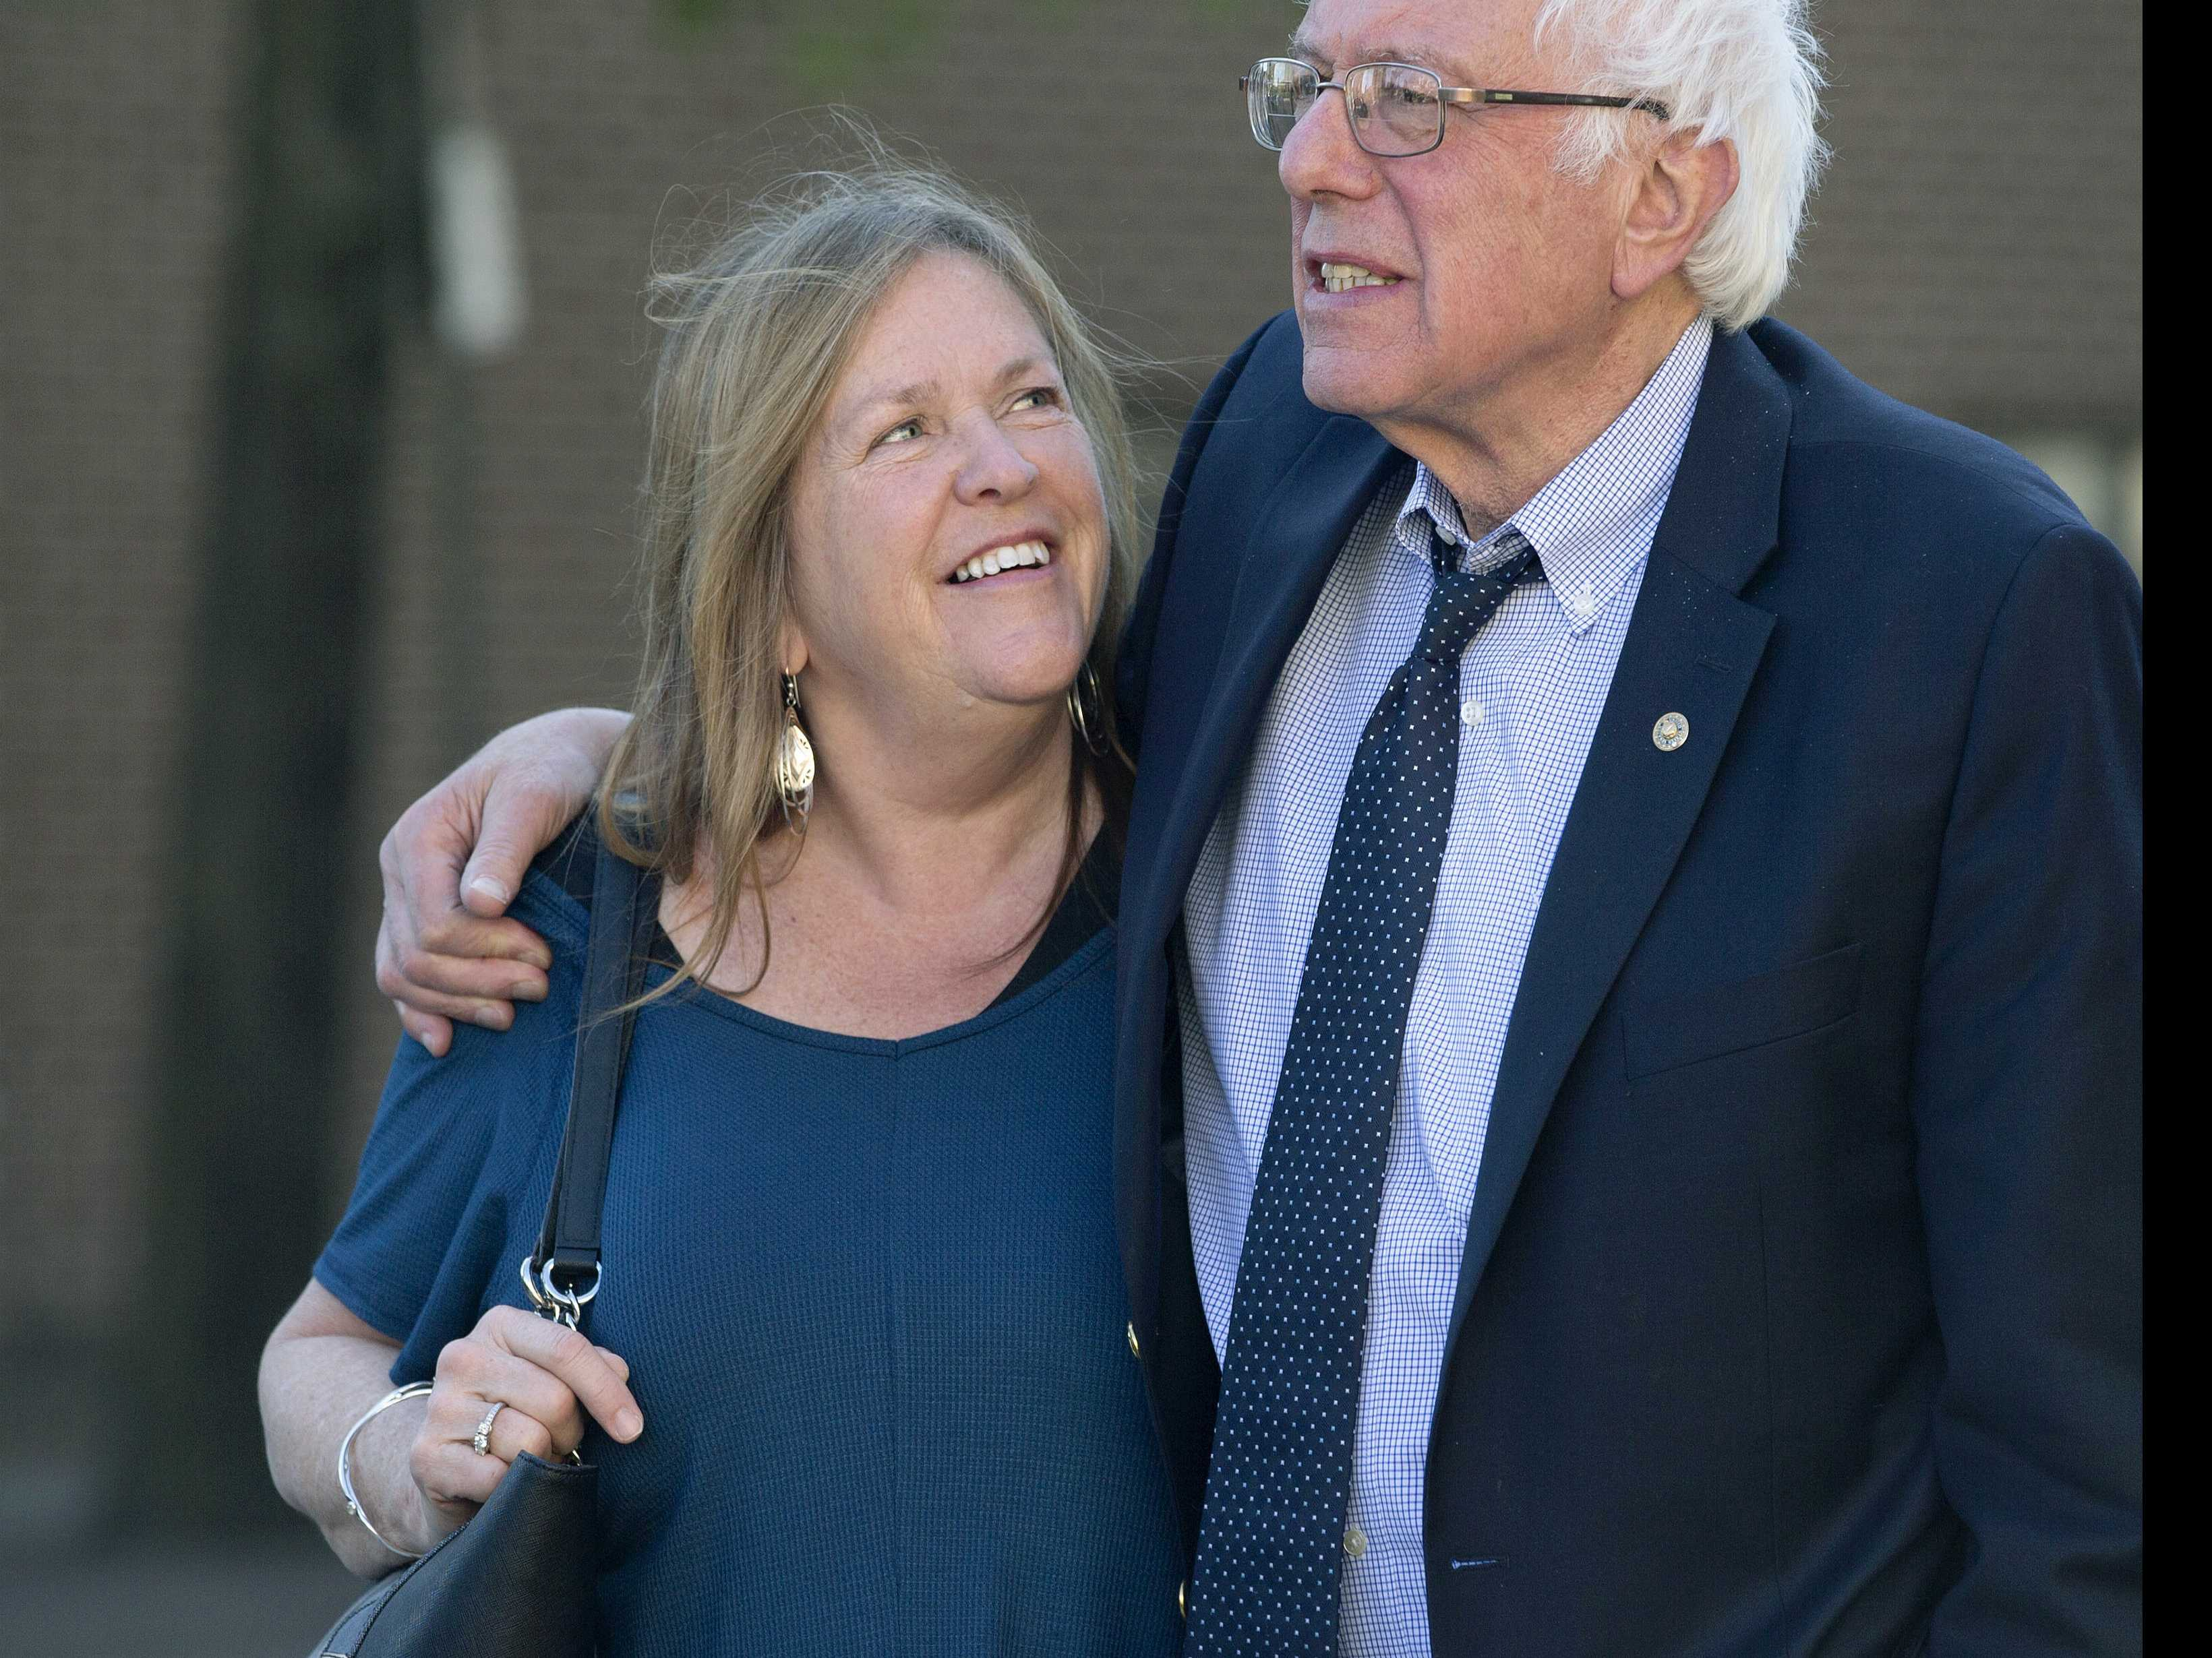 Is Jane Sanders the most Powerful Woman not Running in 2020?